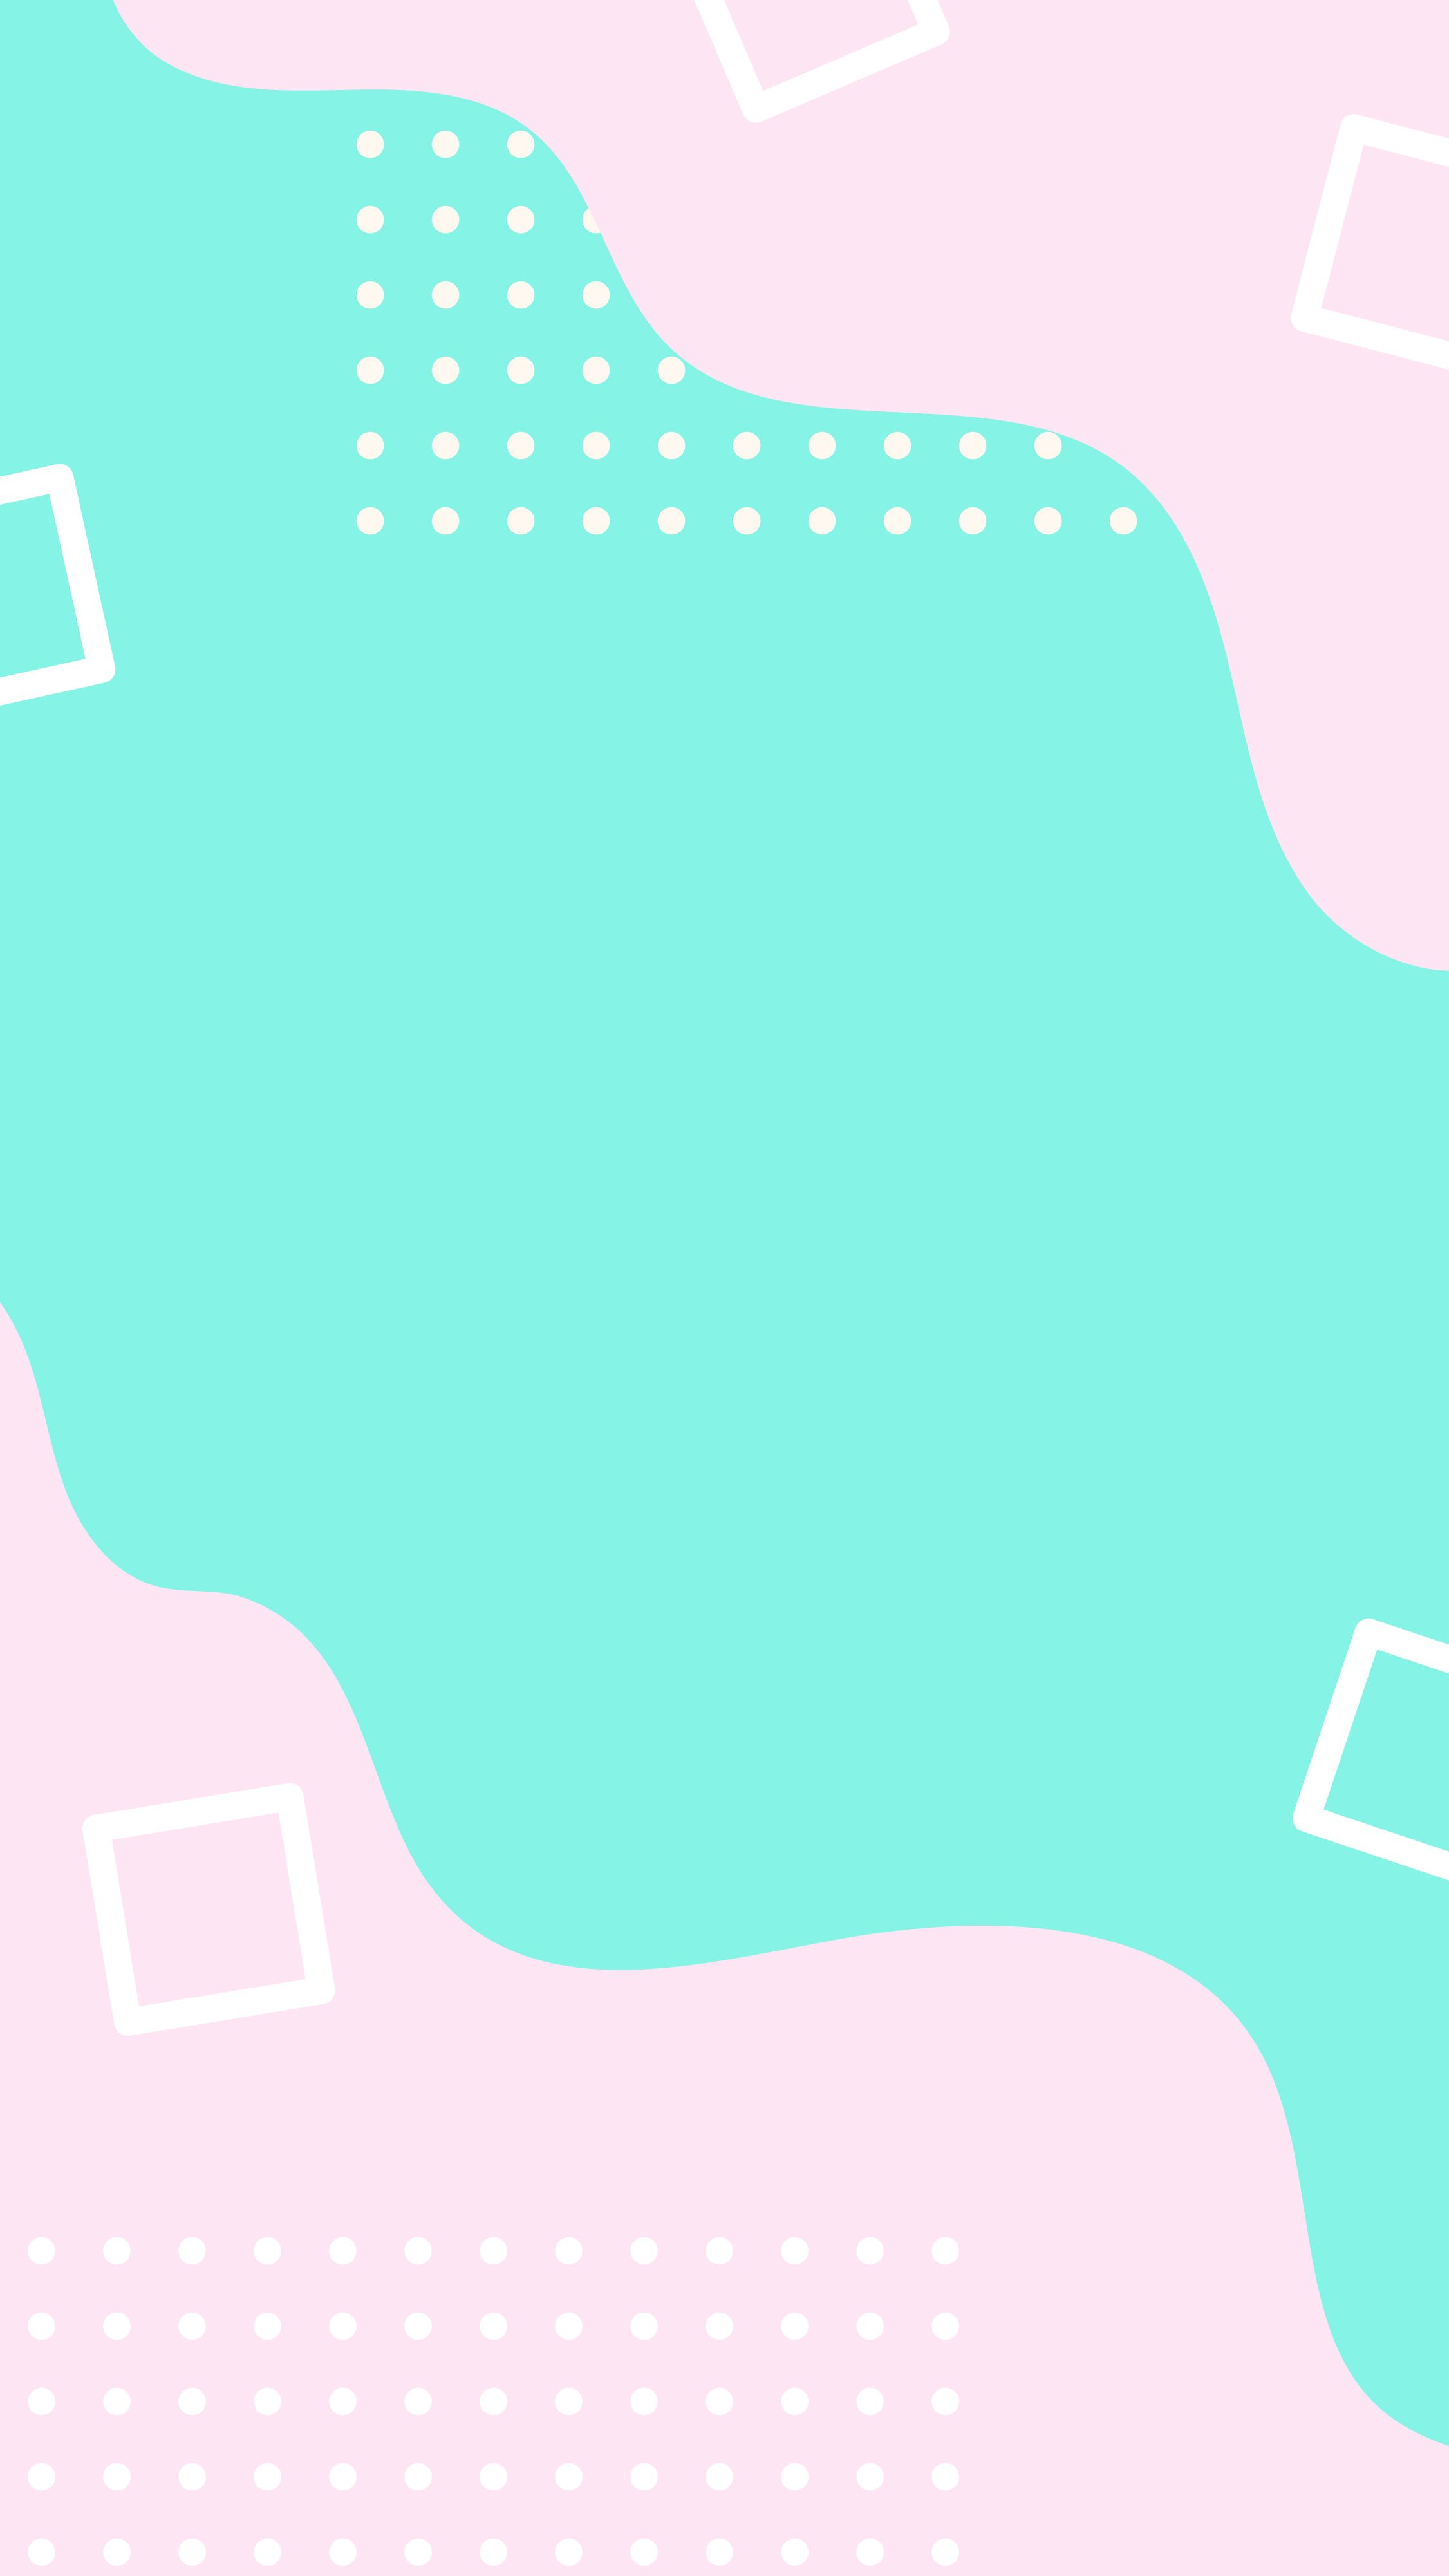 Pastel abstract background for instagram story or iphone